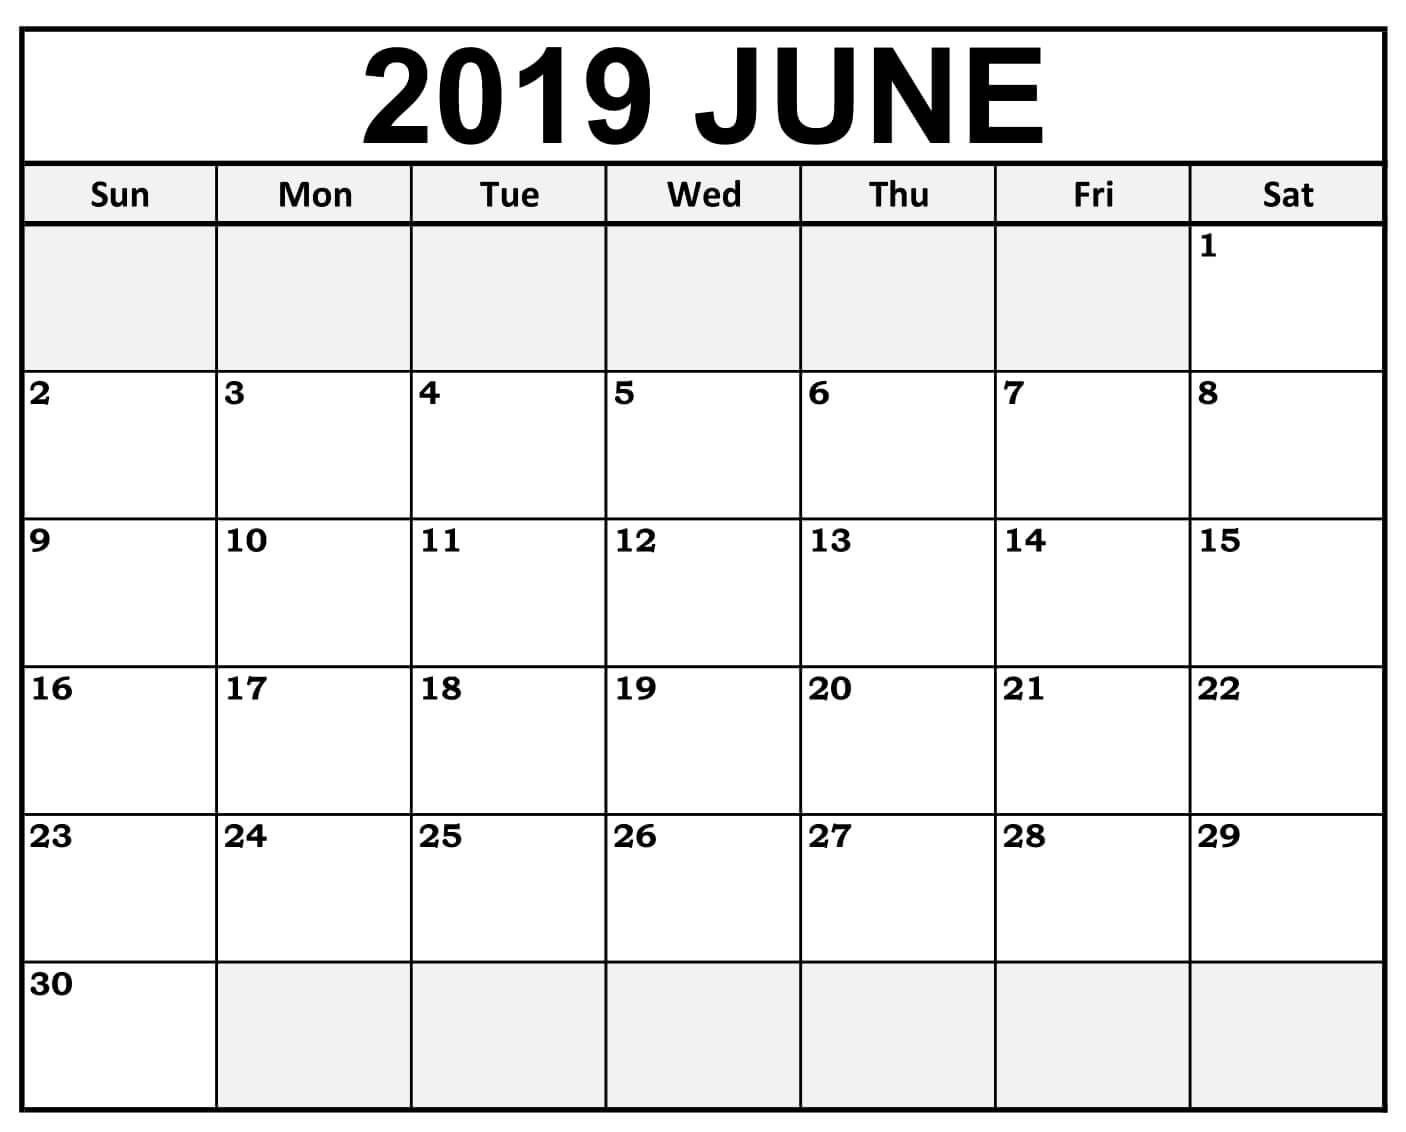 June 2019 Calendar #weekend #highlighted | September Remarkable Free Printable Calendars Without Weekends